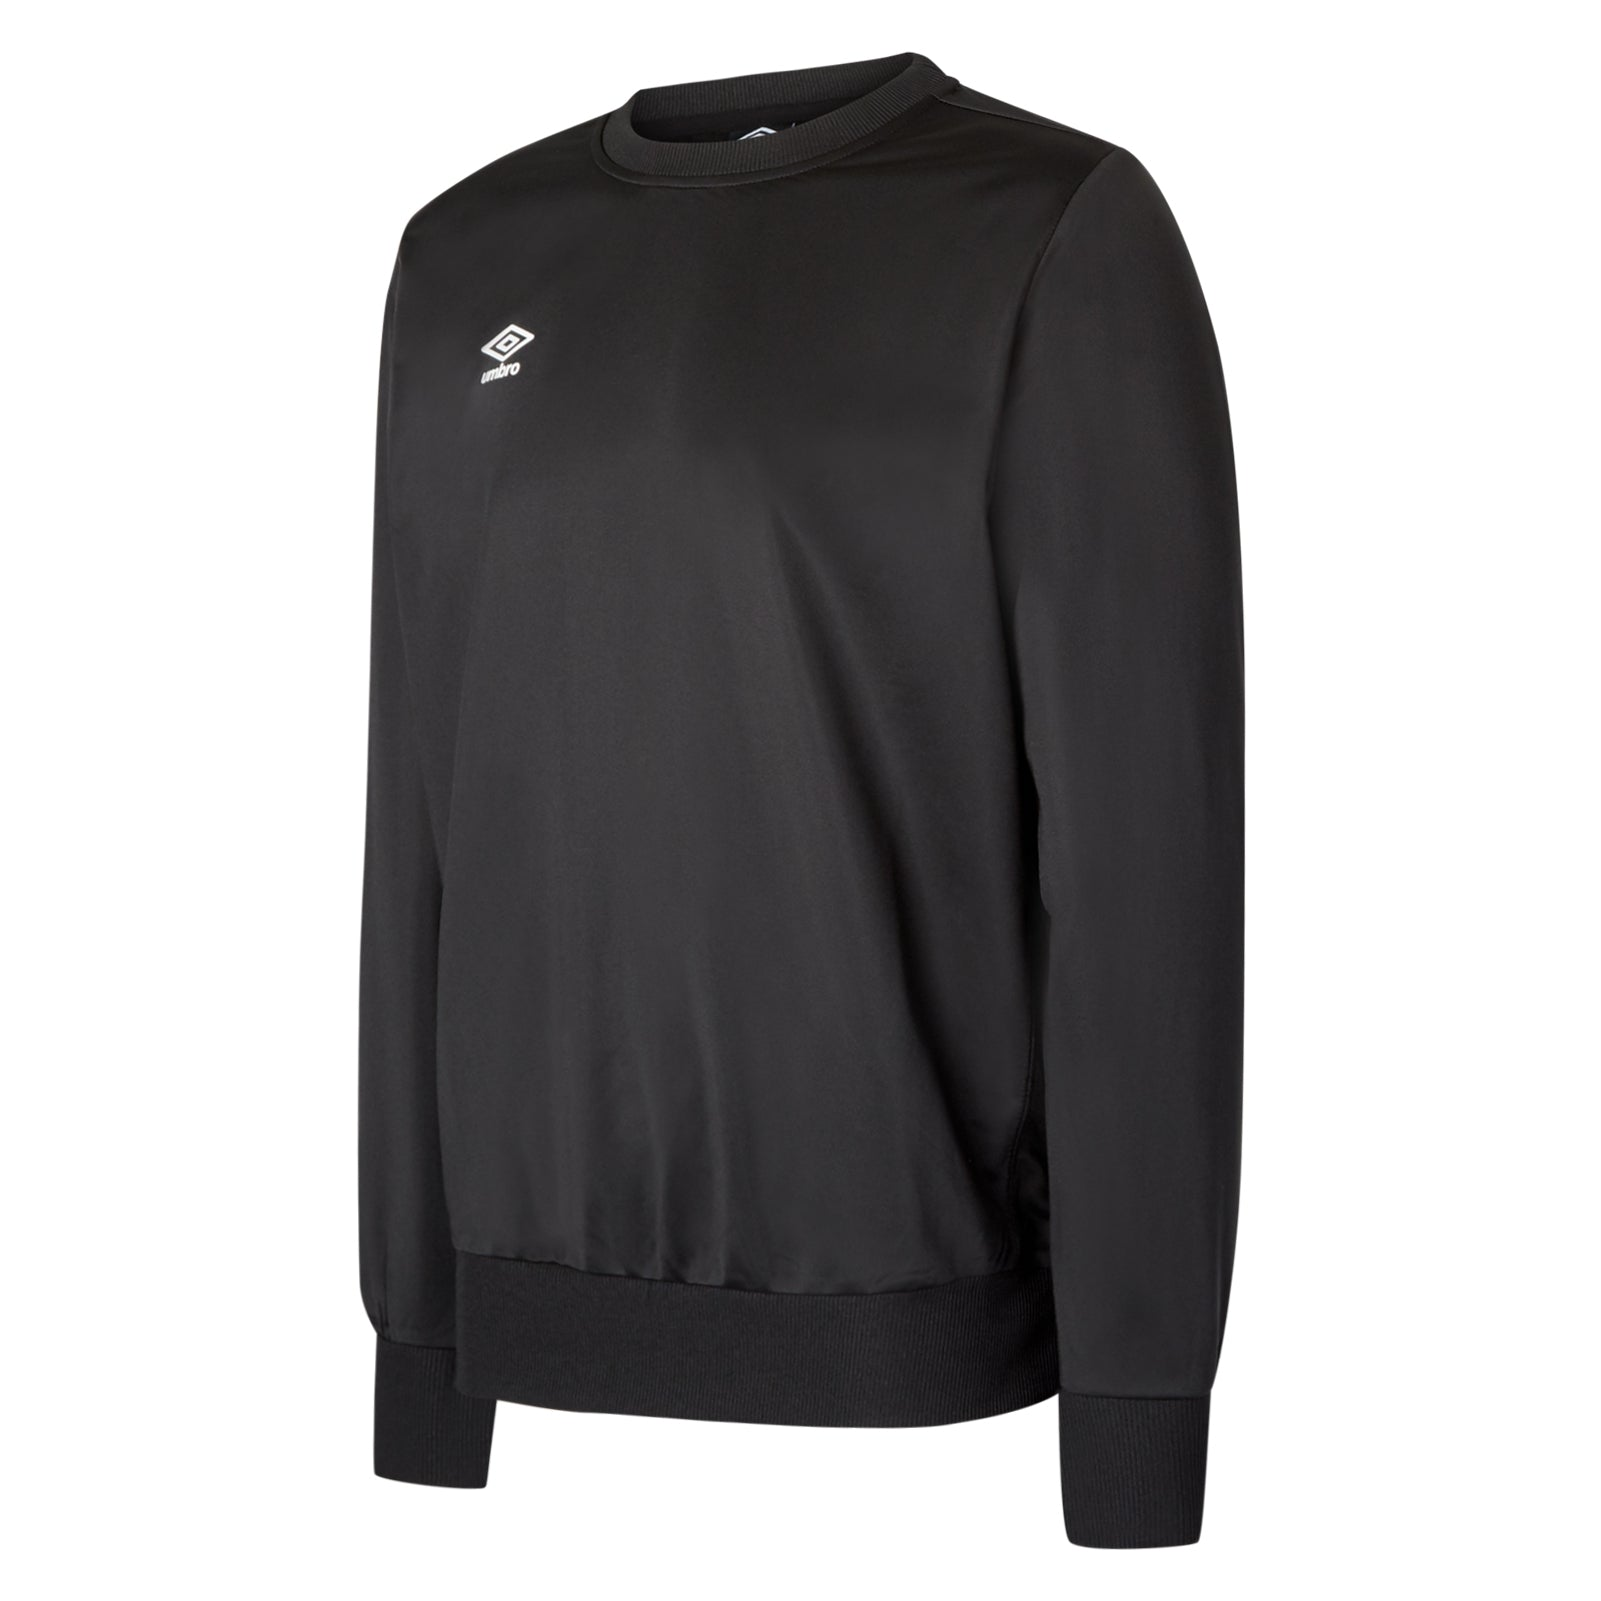 Umbro club Essential poly sweat in black with white Diamond logo